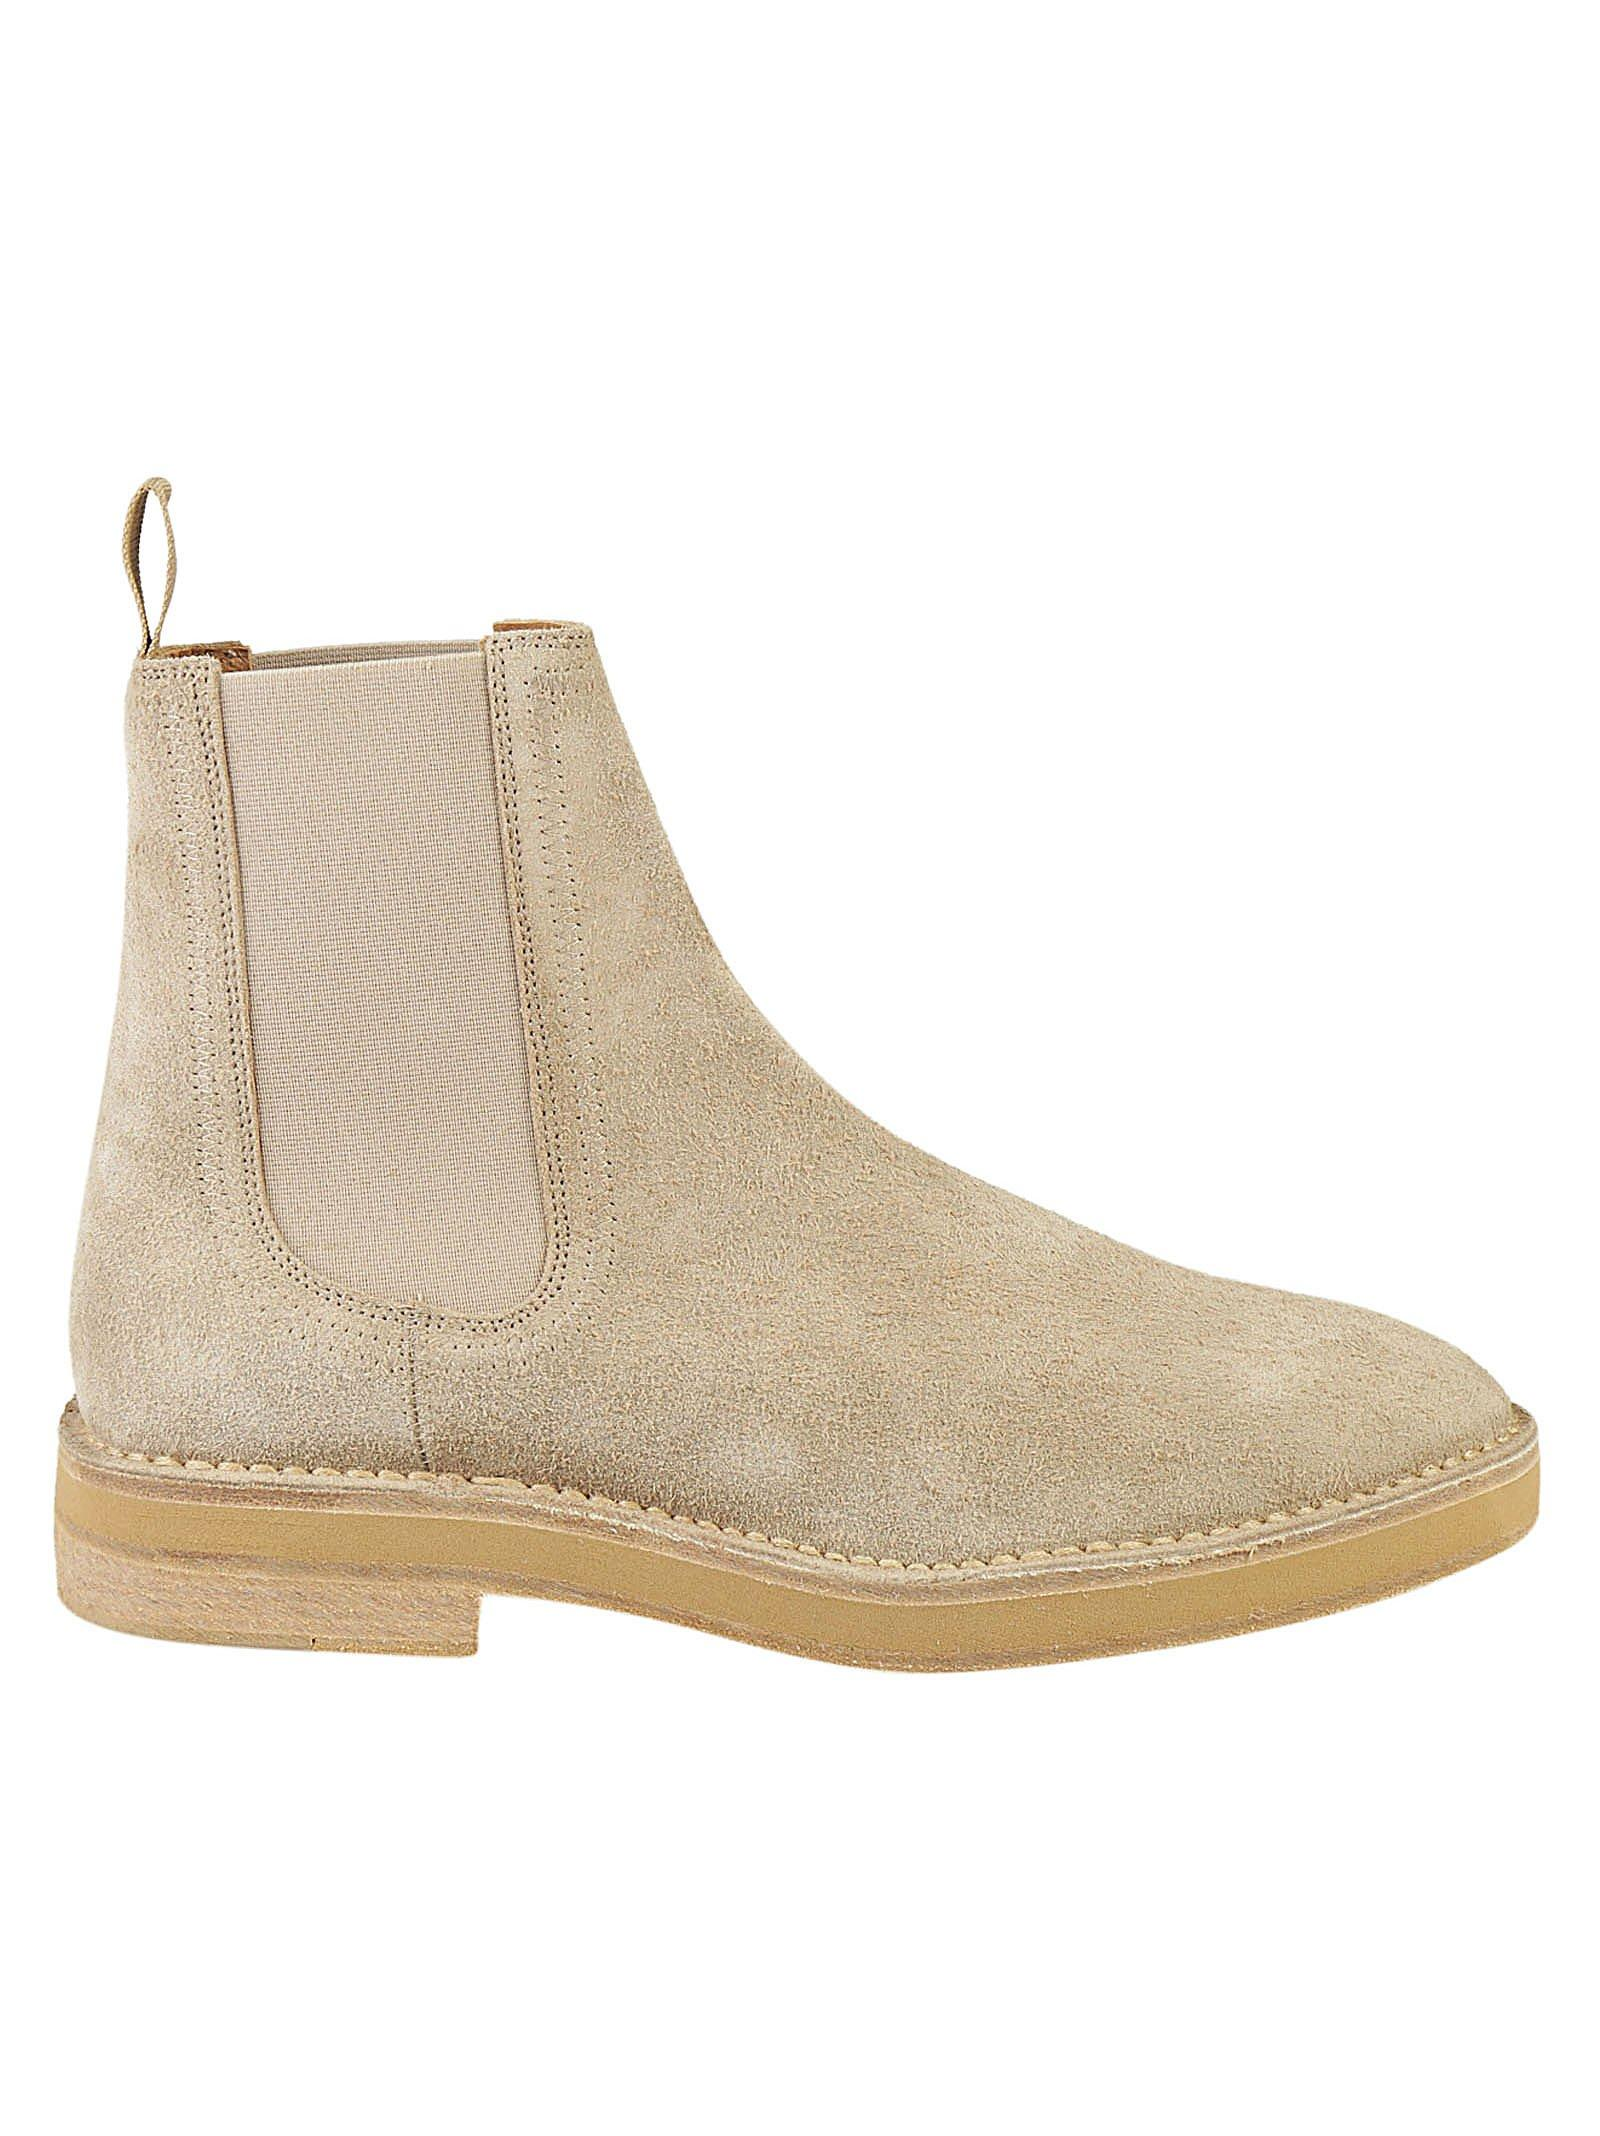 78b91c332 Yeezy Shaggy Suede Chelsea Boots In Neutrals. CETTIRE